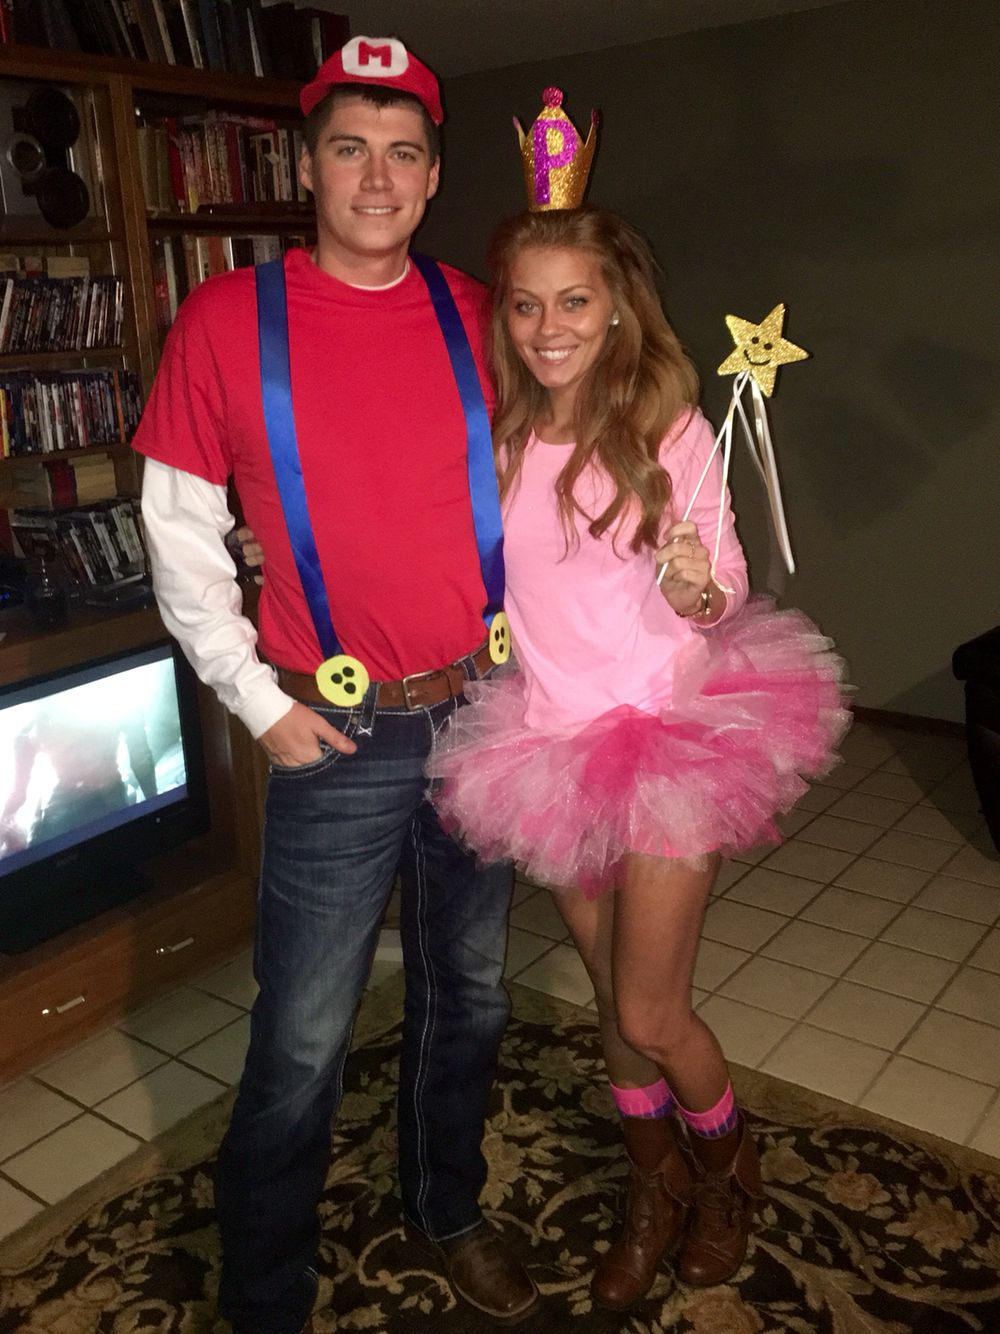 mario and princess peach halloween costume idea | halloween in 2018